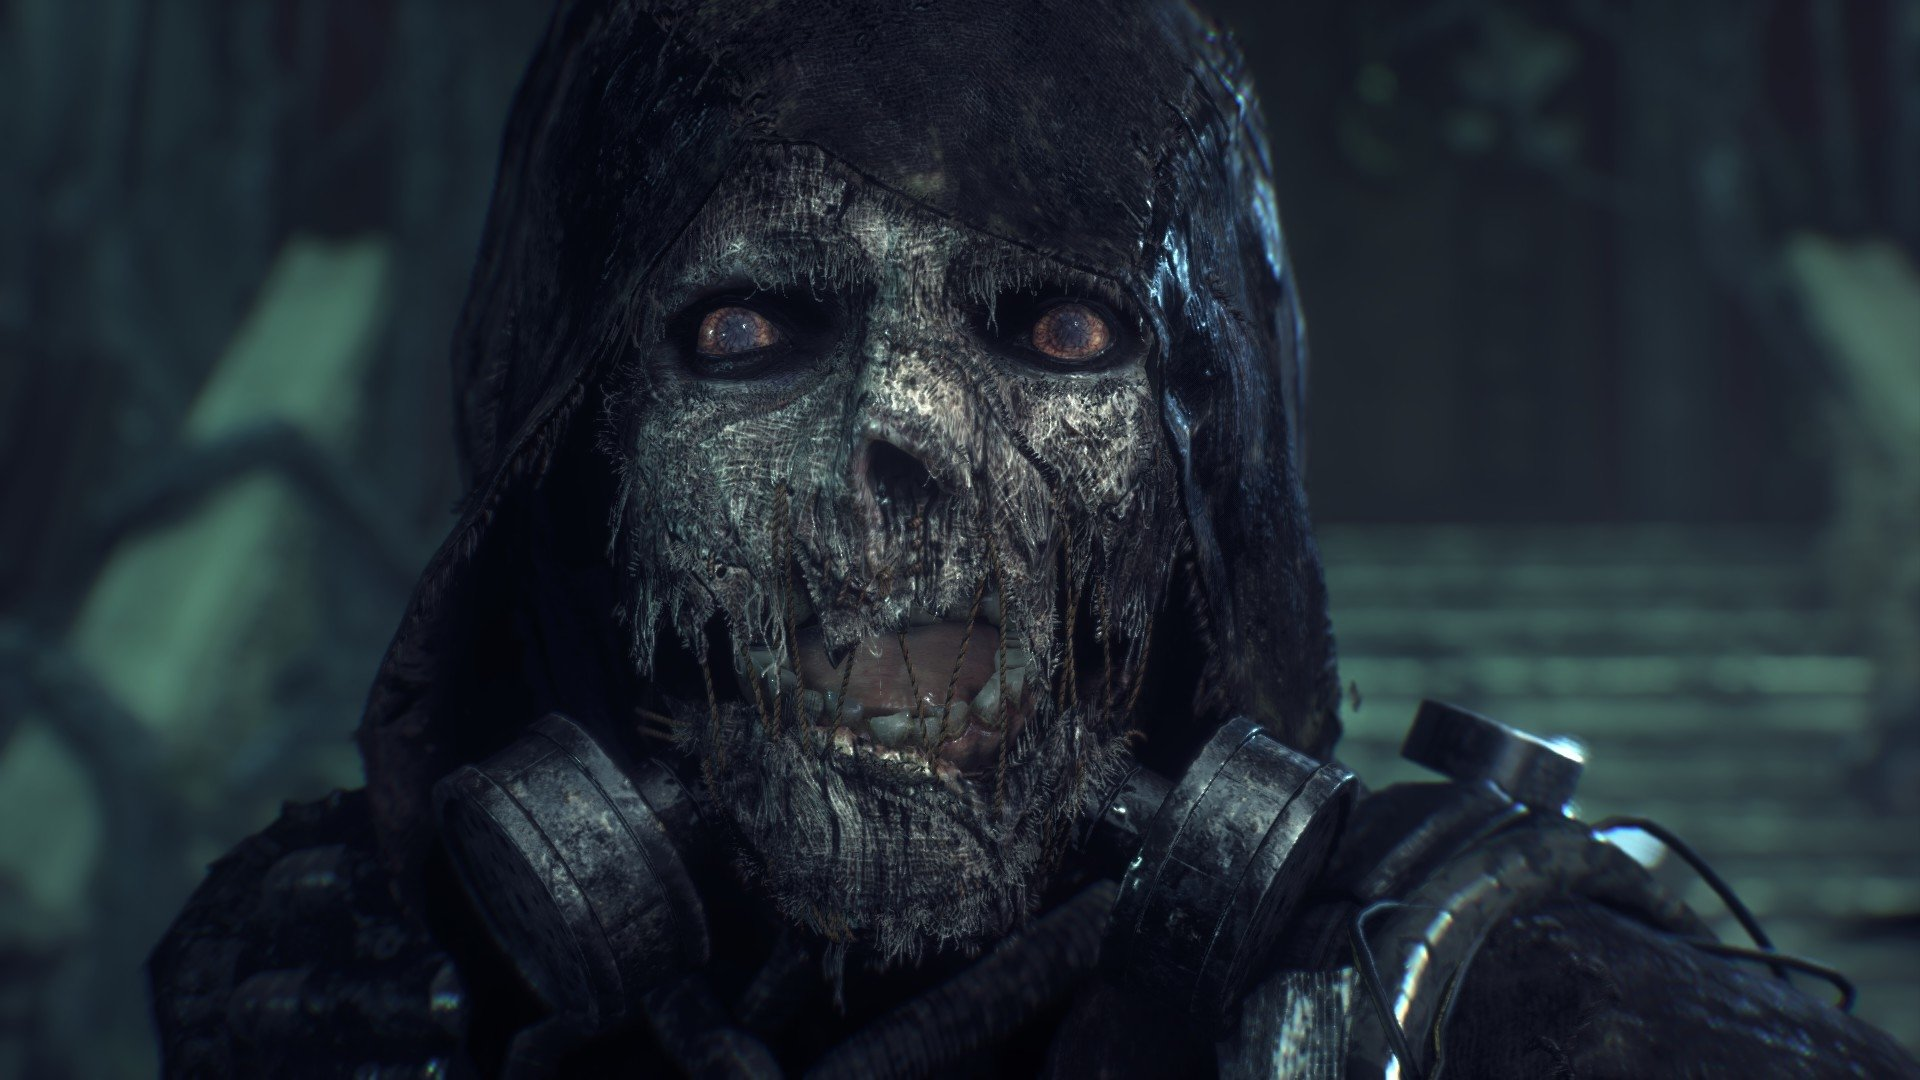 Scarecrow Batman Arkham Knight Hd Wallpaper Background Image